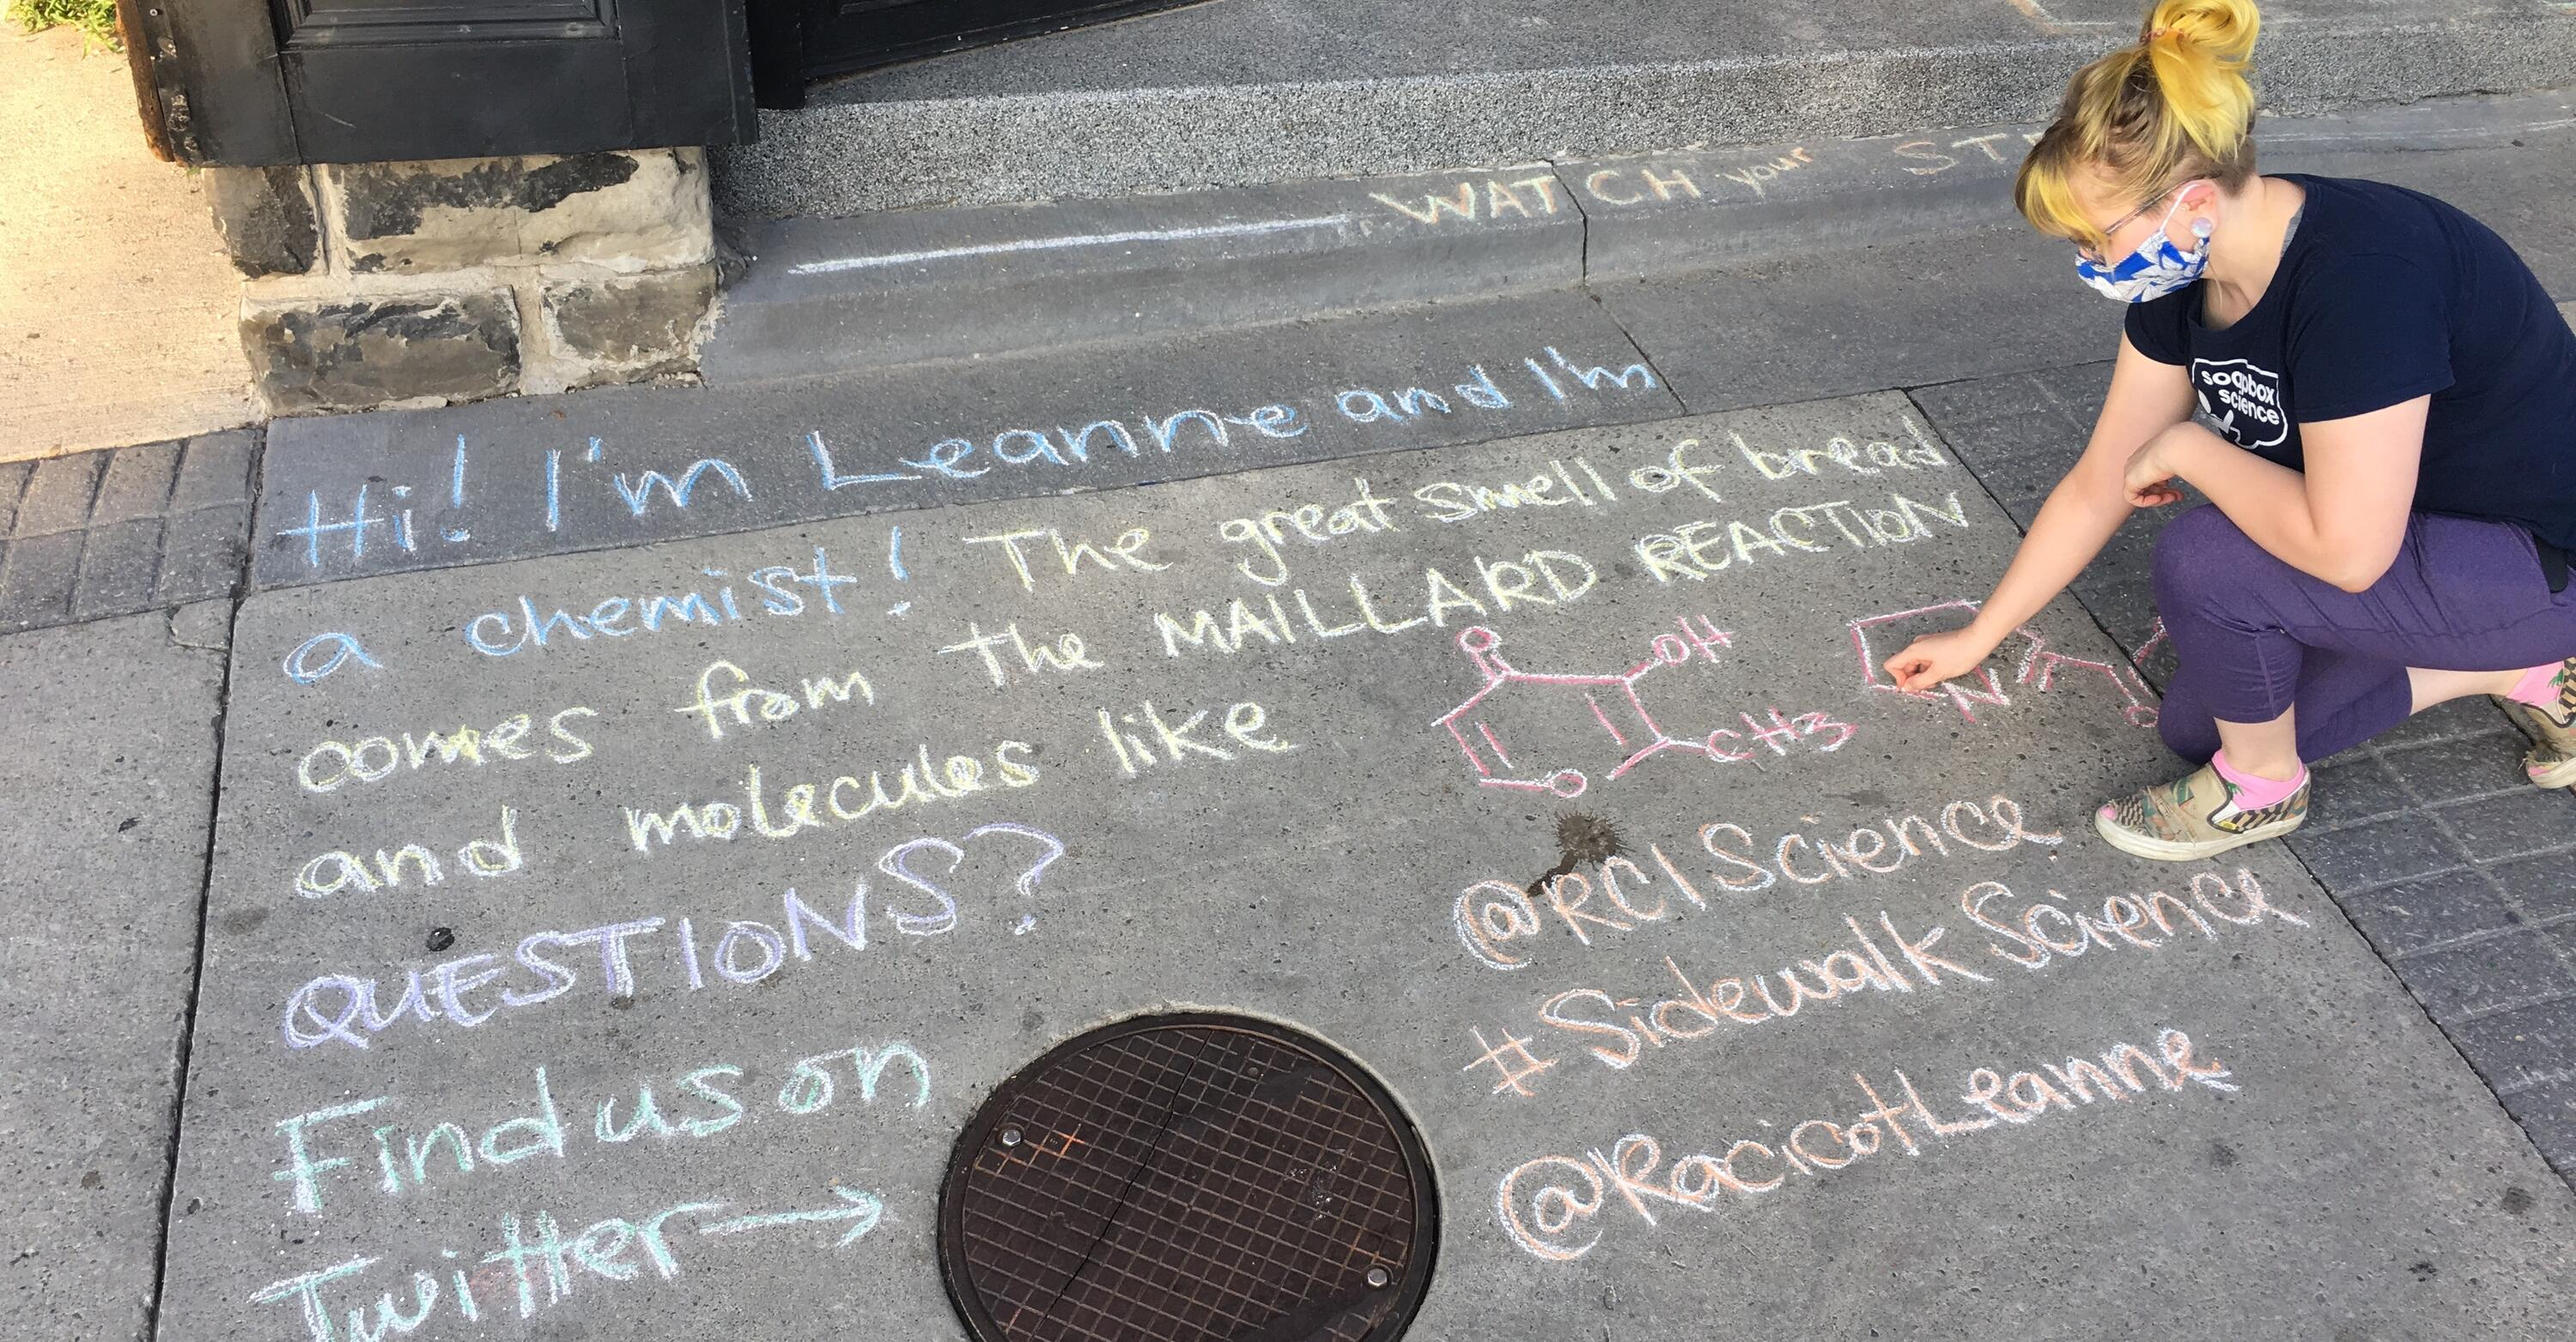 Woman writing about her research in chalk on the sidewalk